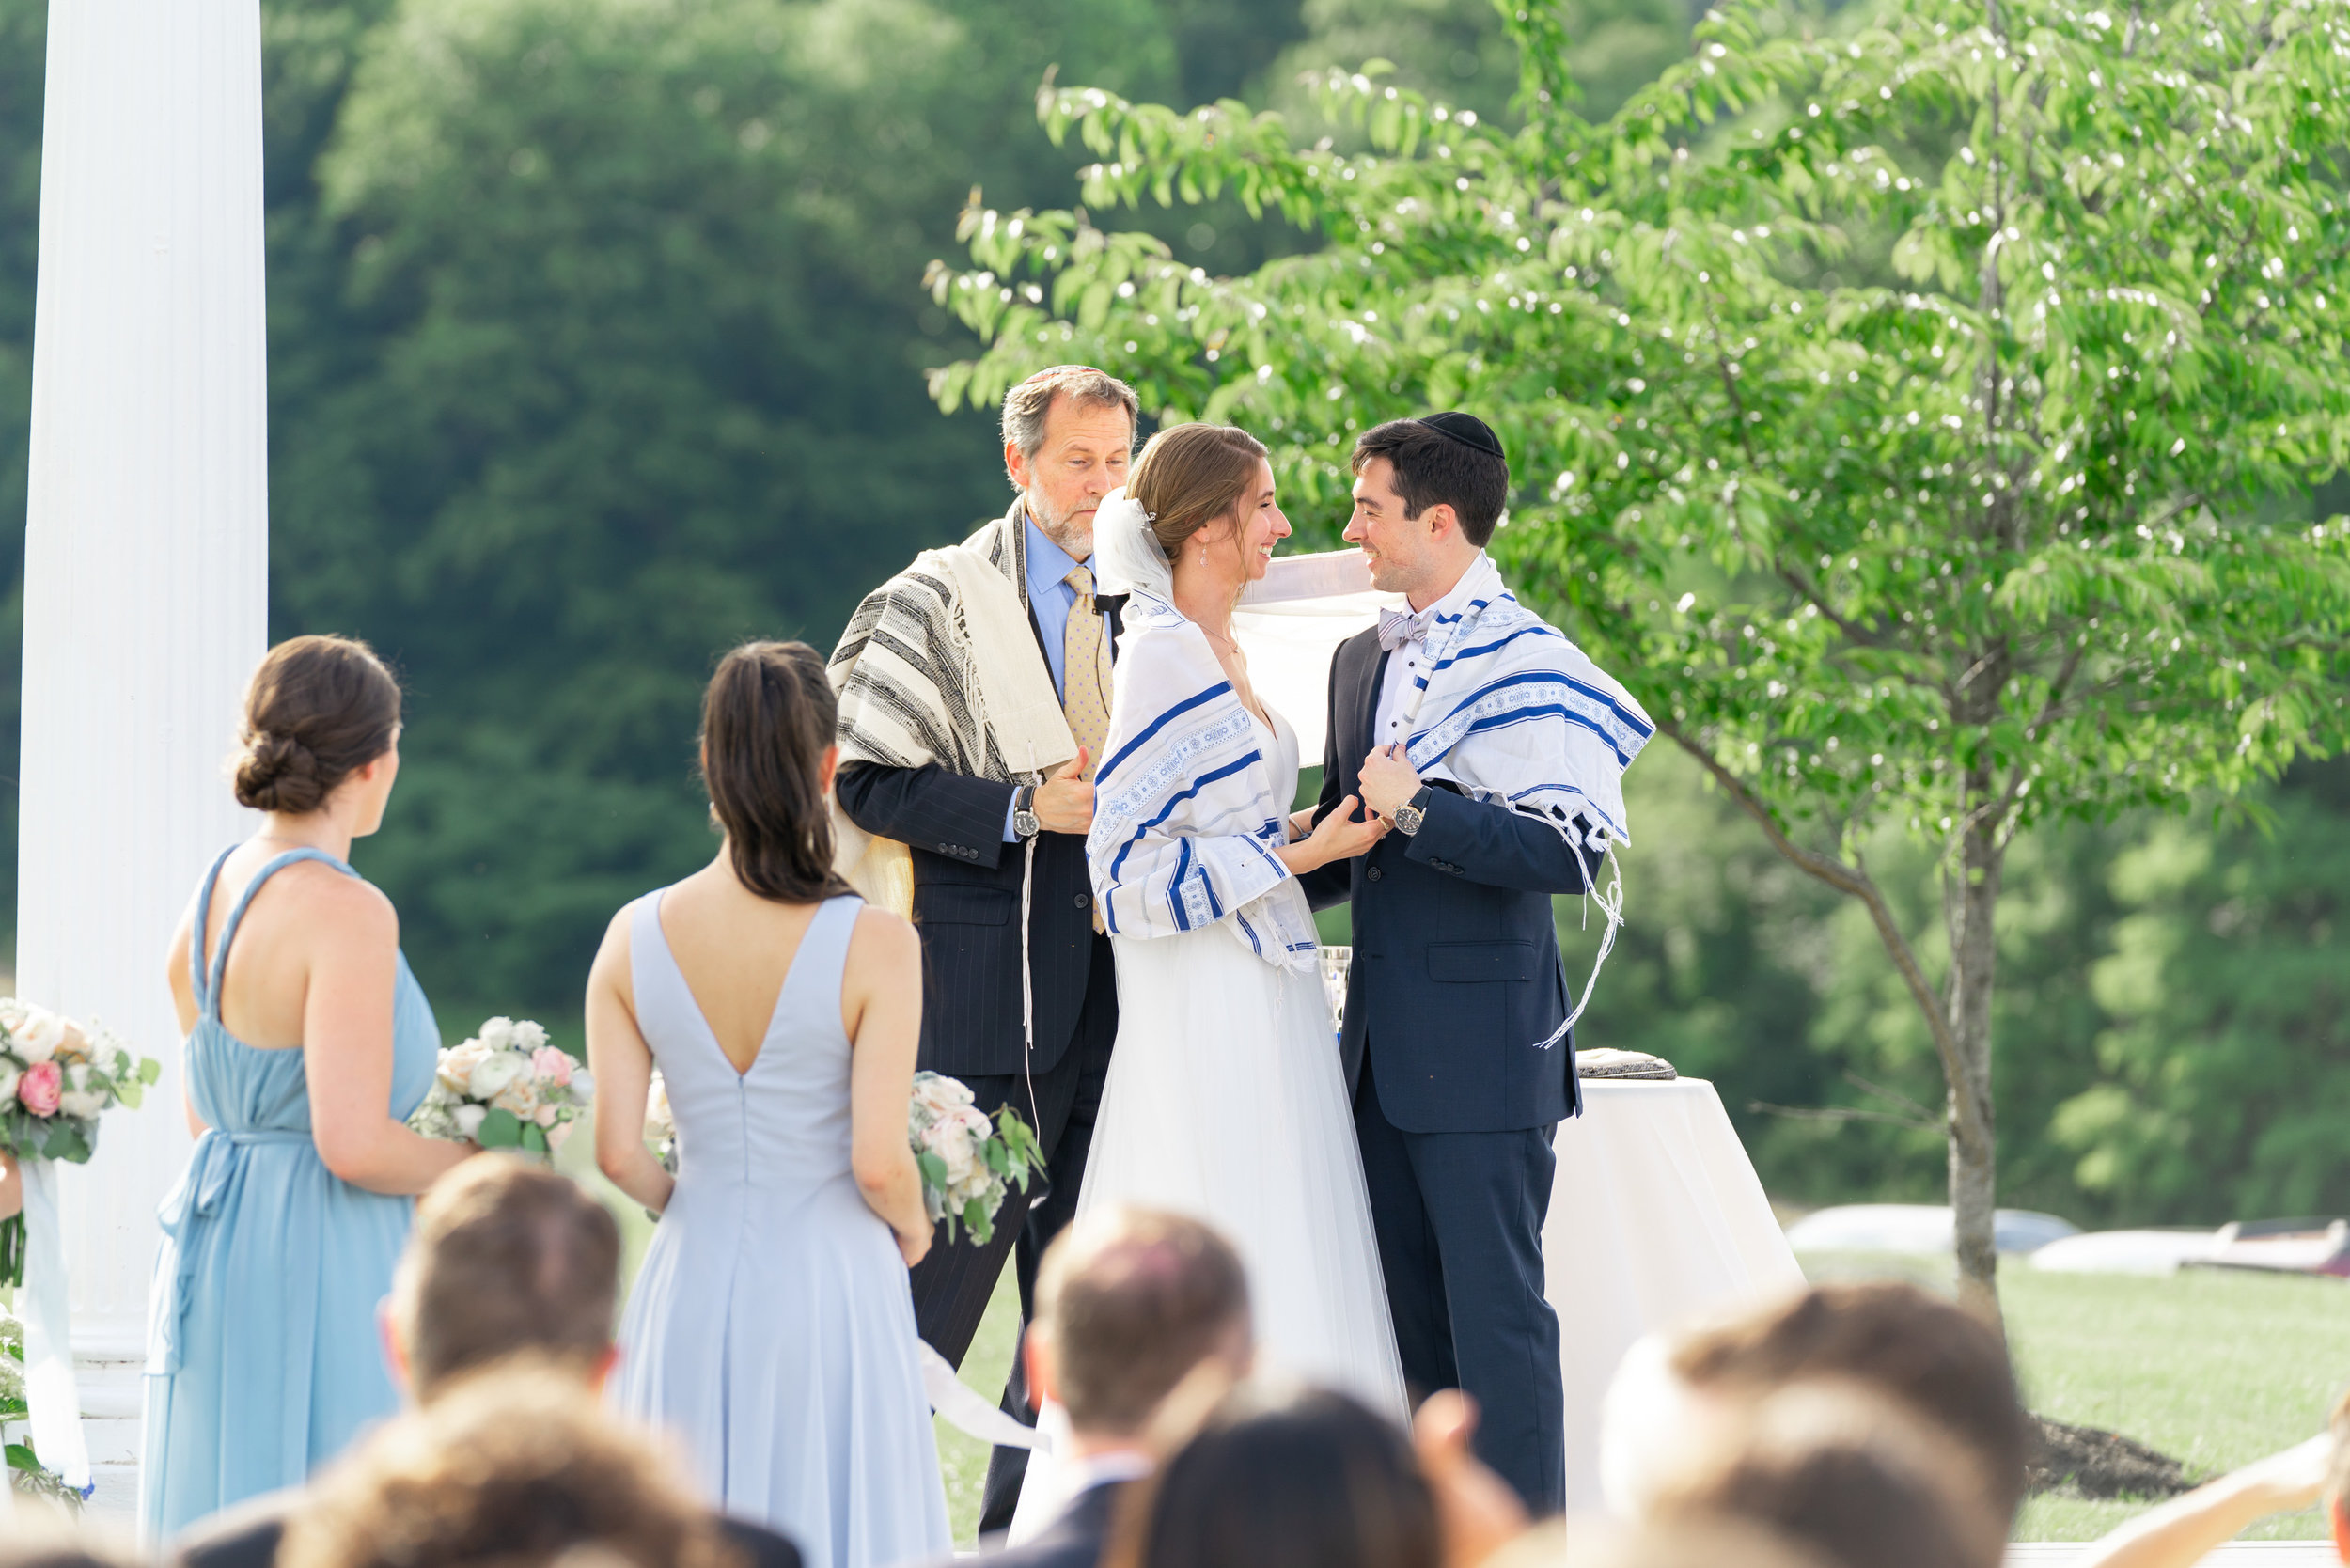 Jewish wedding photographer in maryland, washington dc and virginia